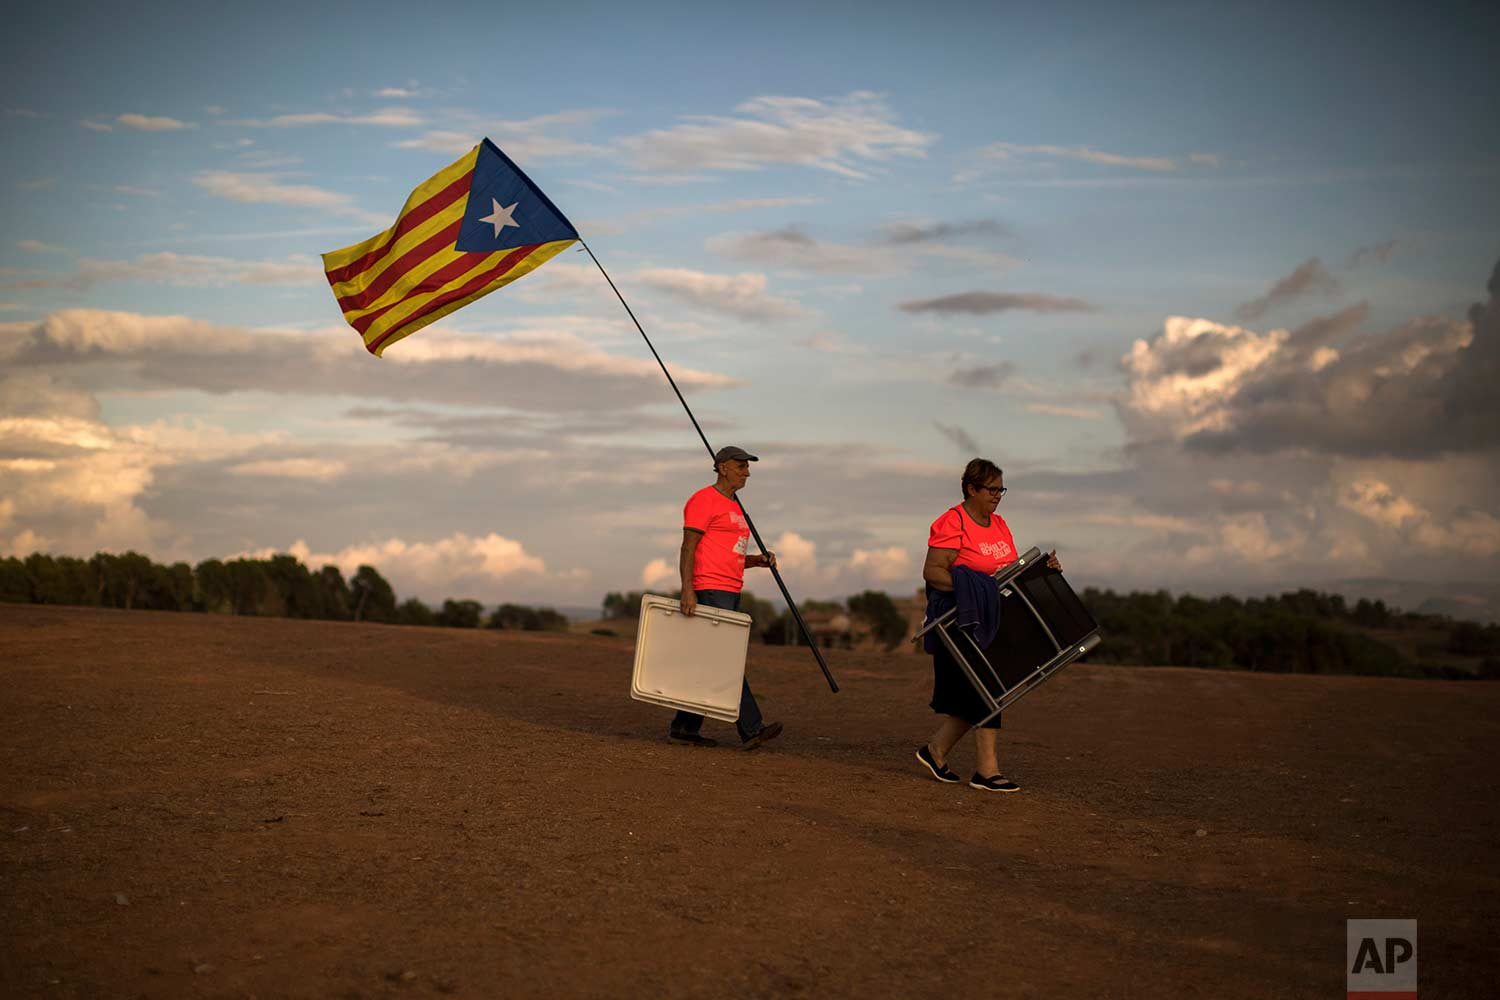 In this Tuesday, Sept. 18, 2018 photo, pro independence people carry chairs and a picnic basket, as they arrive to a field overlooking the Lledoners prison in Sant Joan de Vilatorrada, about 50 kilometres away from Barcelona, Spain. (AP Photo/Emilio Morenatti)